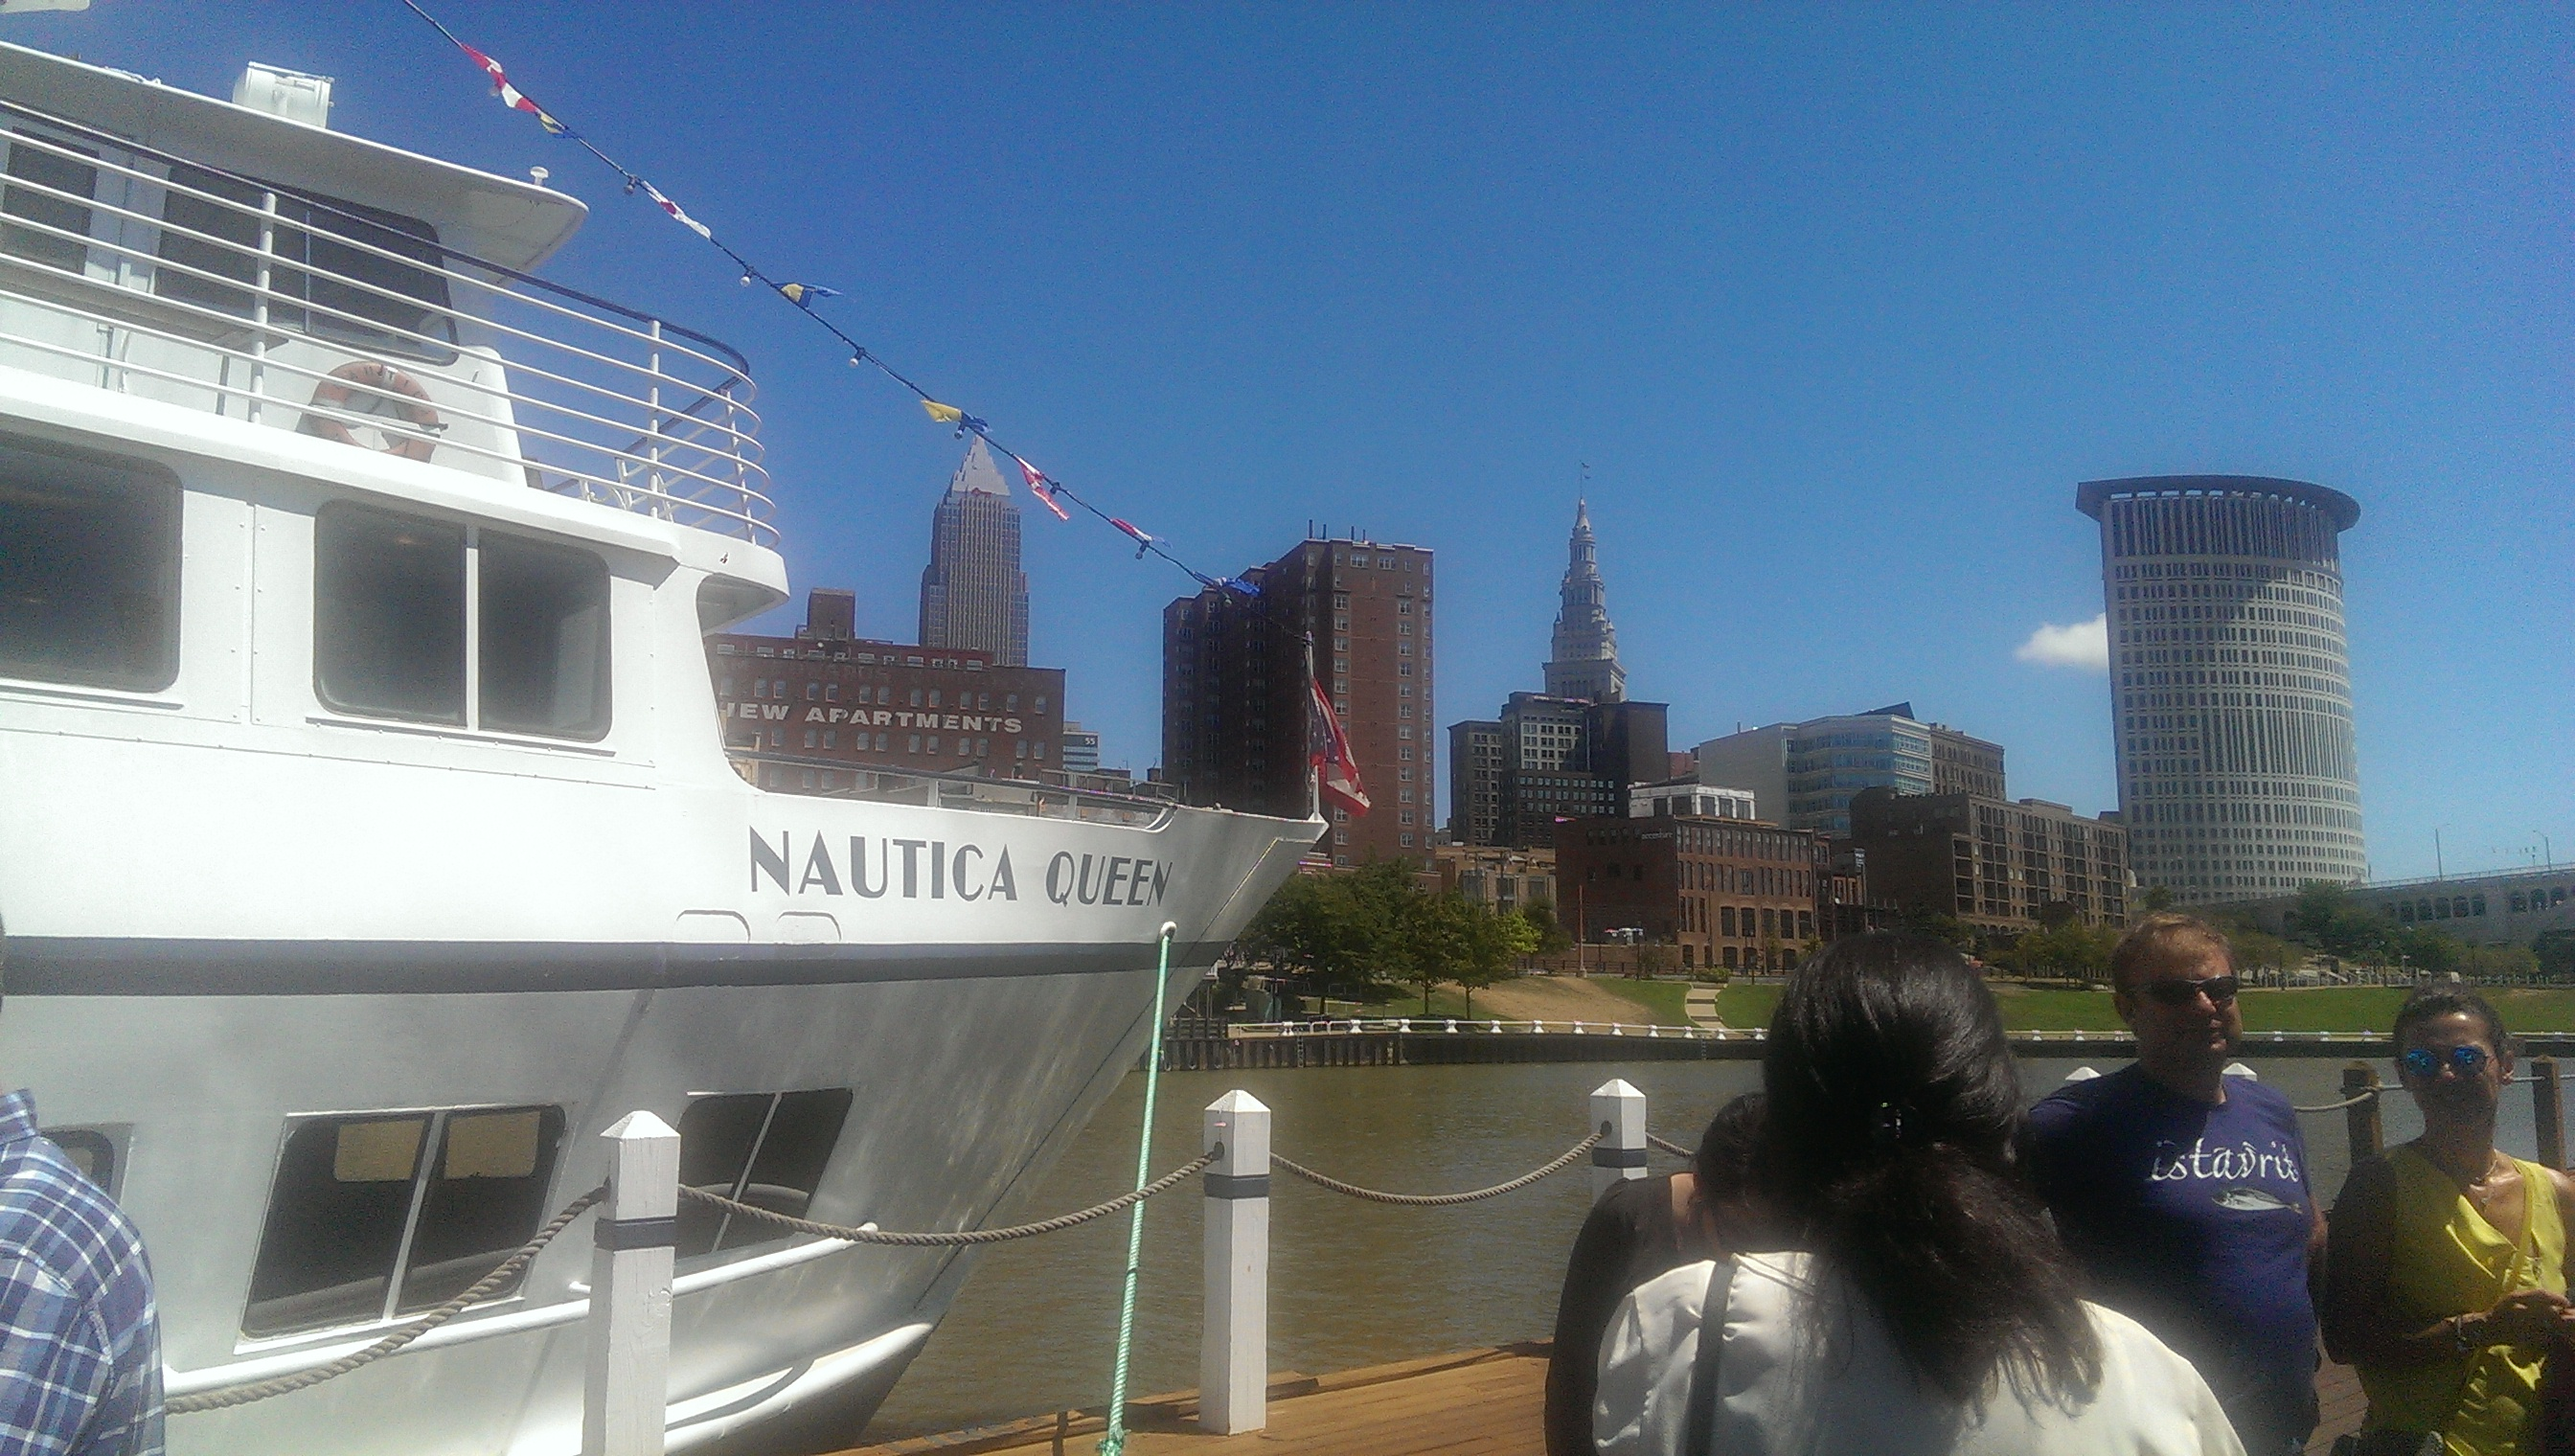 Swell Lunch Buffet On The Nautica Queen Cleveland Rocks Interior Design Ideas Inamawefileorg